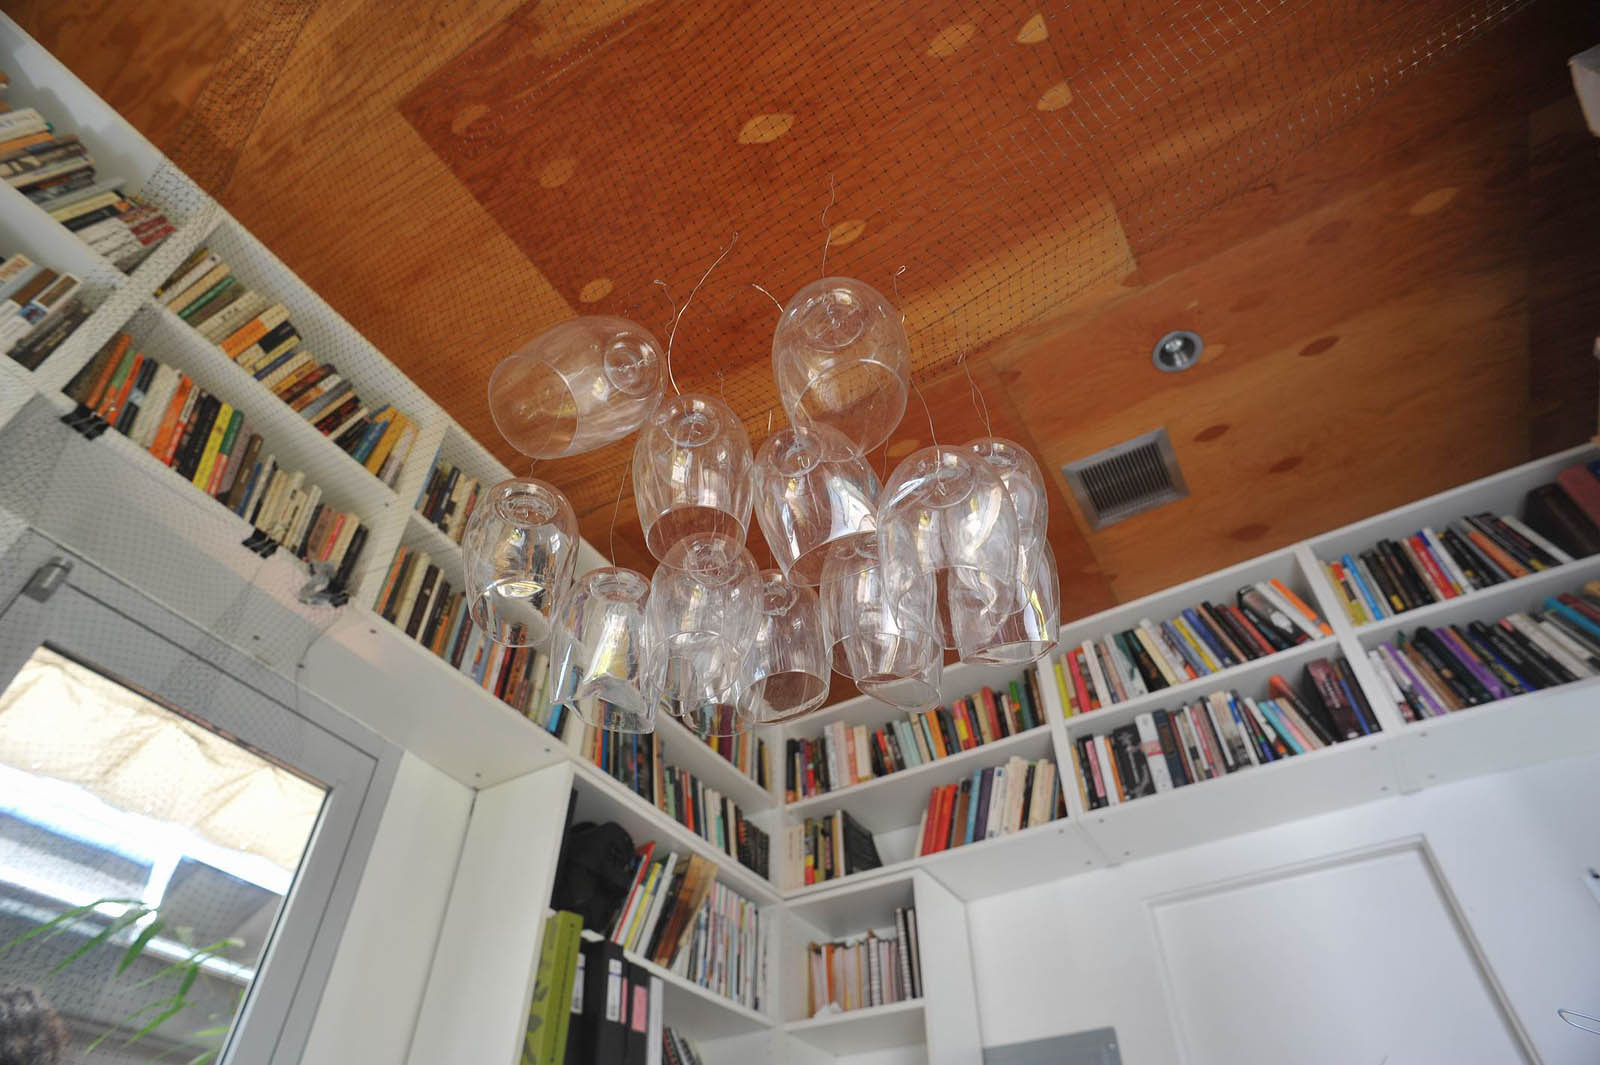 This is the beginning of our investigation with discarded plastic wine glasses as seen suspended from a net hung from our office ceiling.